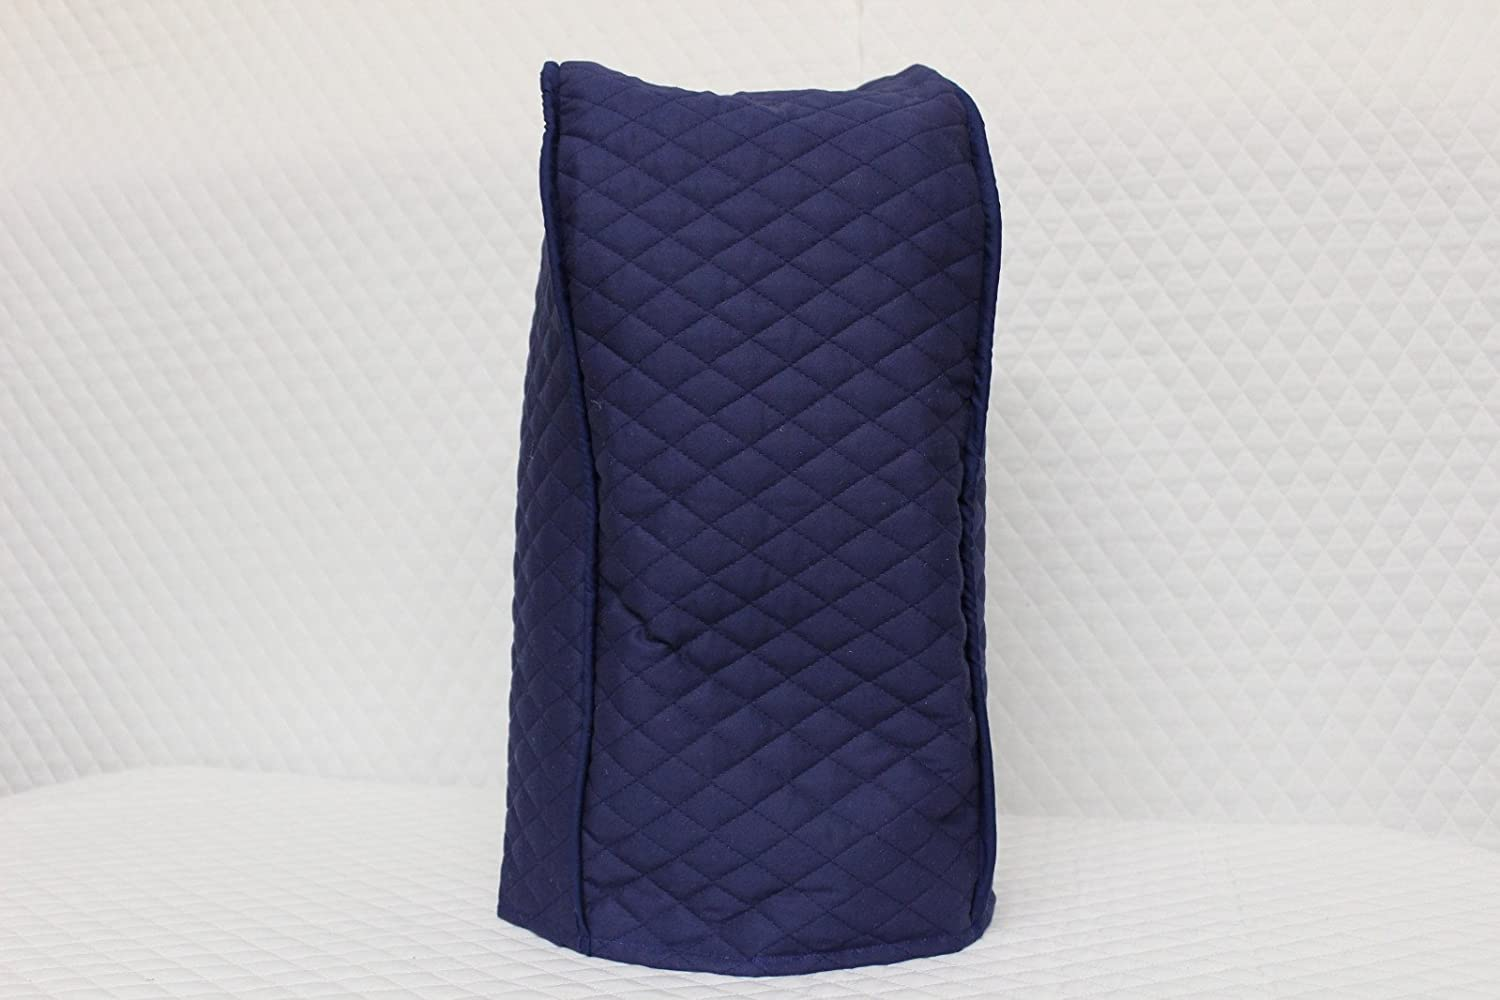 Ninja blender cover - Quilted Double Faced Cotton, Navy